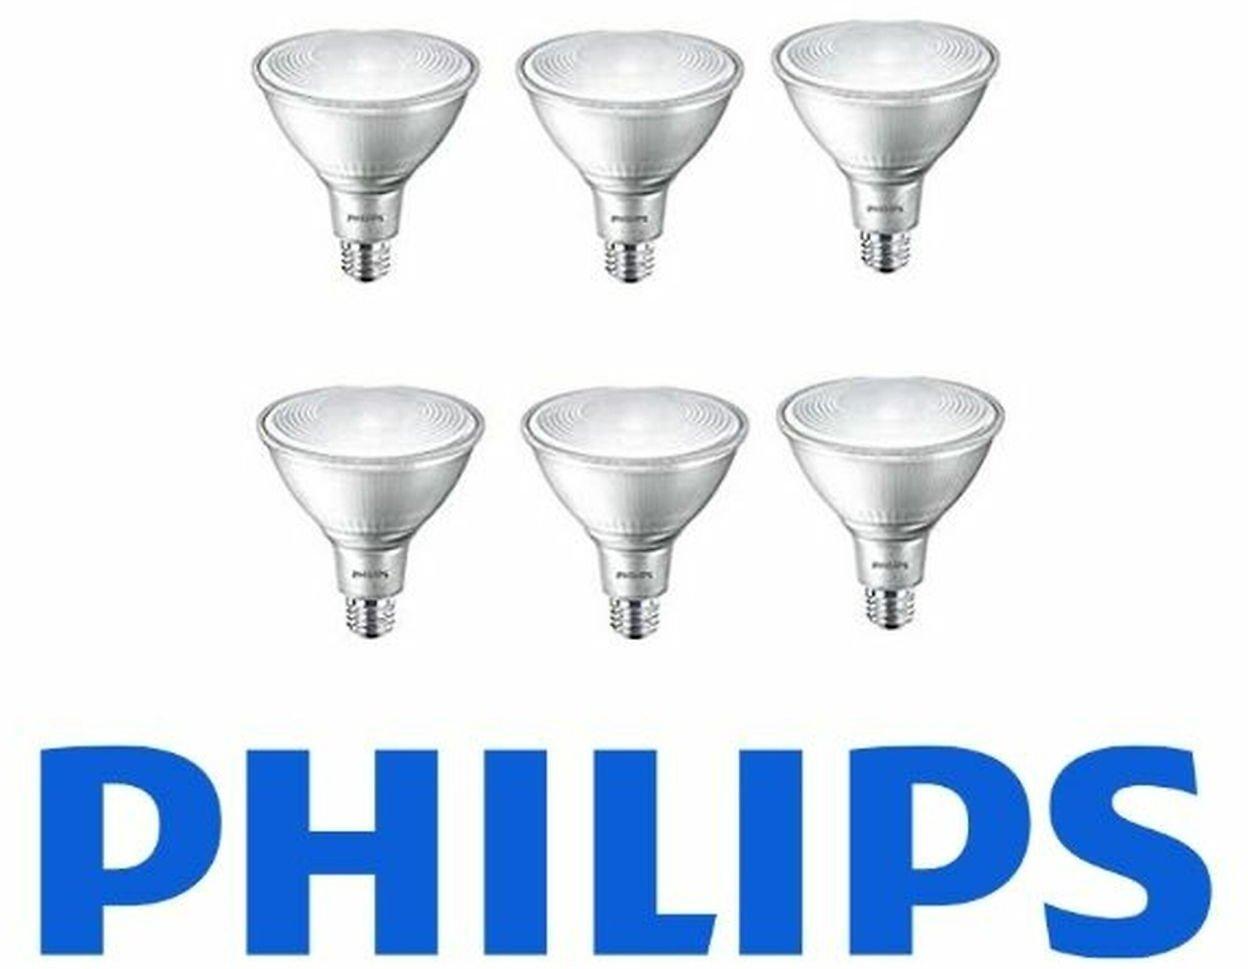 Philips LED Dimmable Flood Light Bulb (6-Pack)